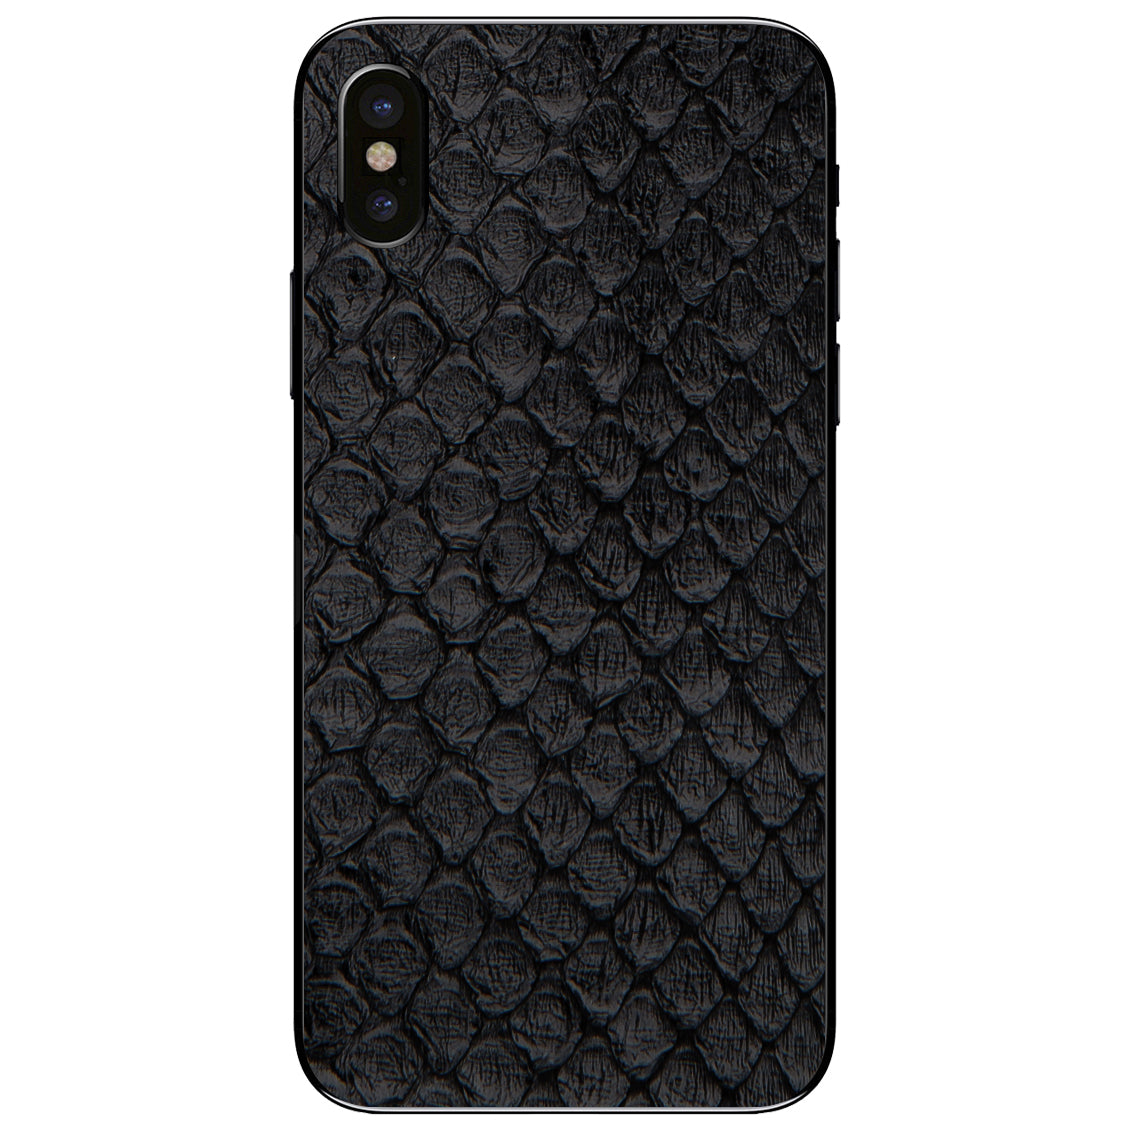 Black Anaconda iPhone X Leather Skin